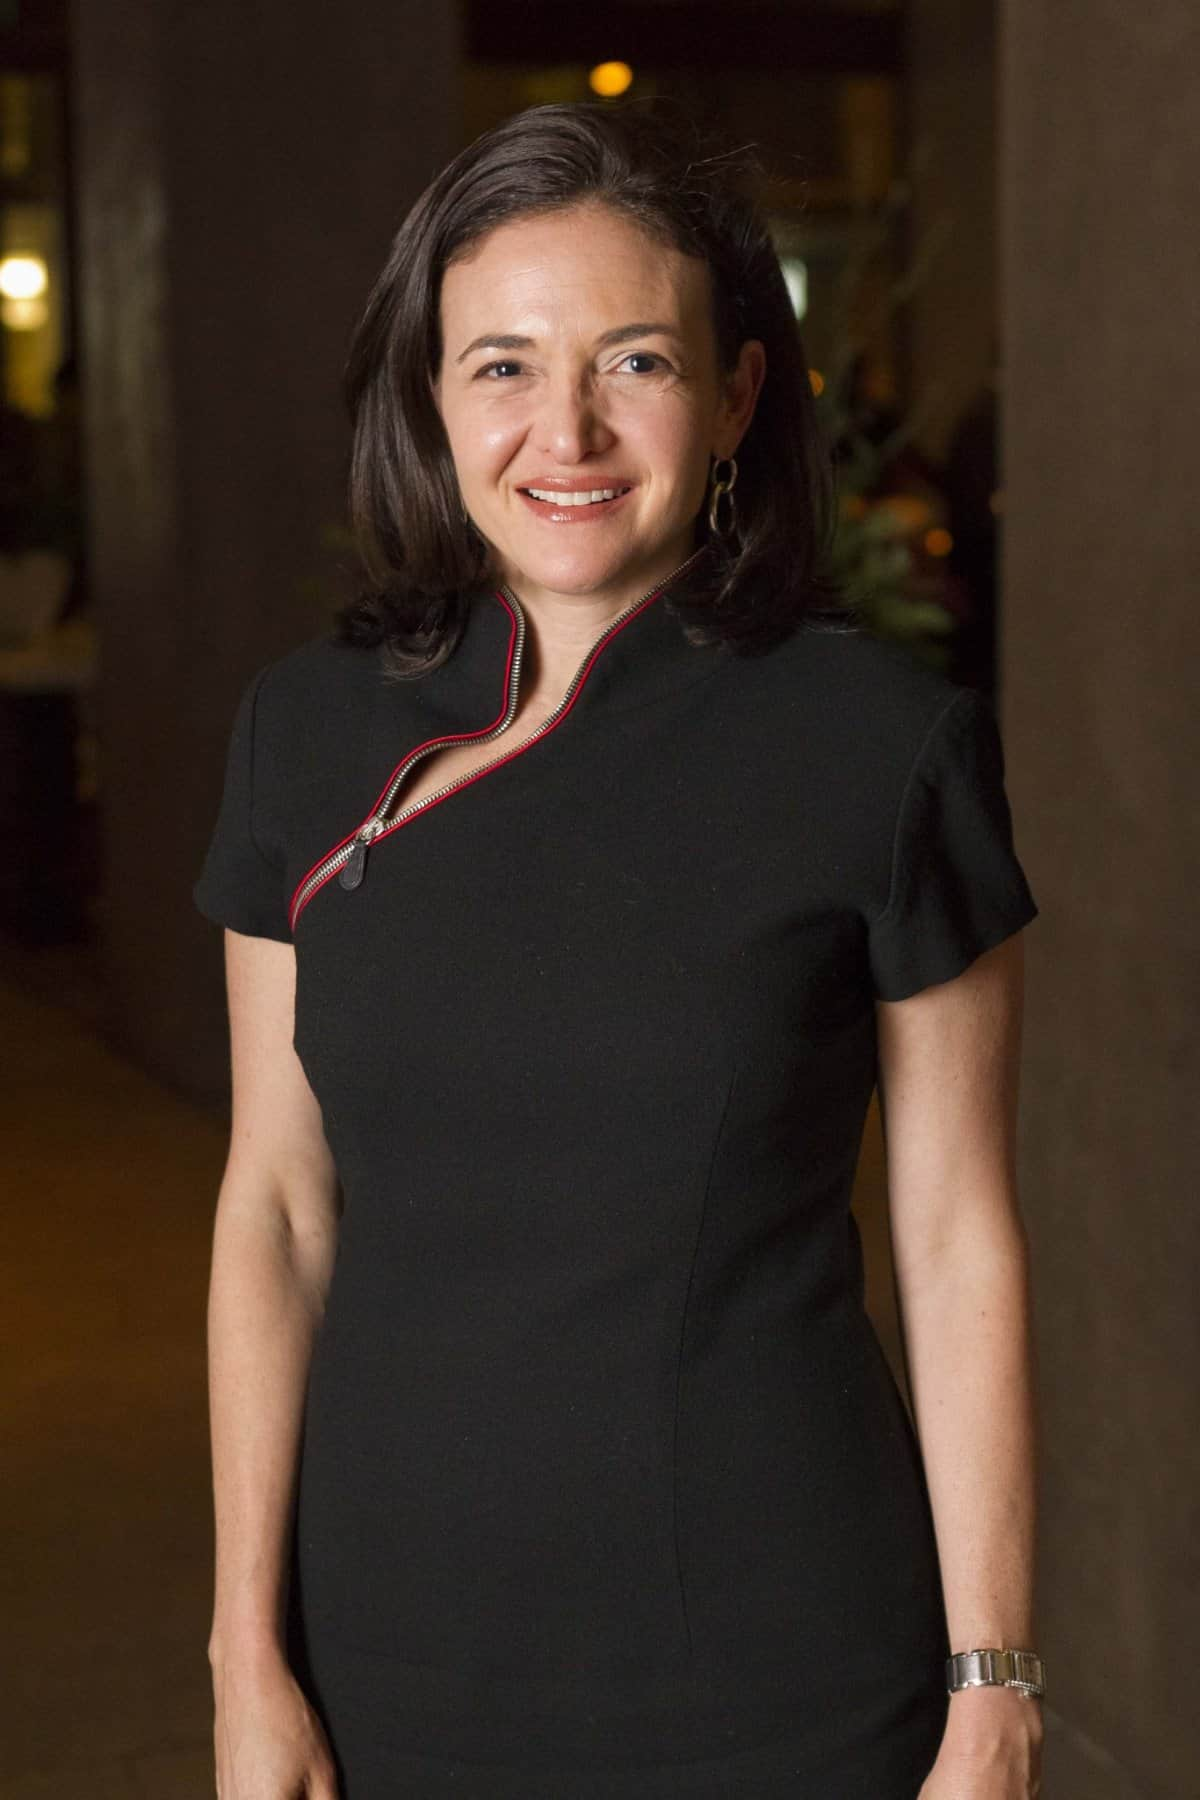 Profile In Style: Sheryl Sandberg; Profile In Personal Style